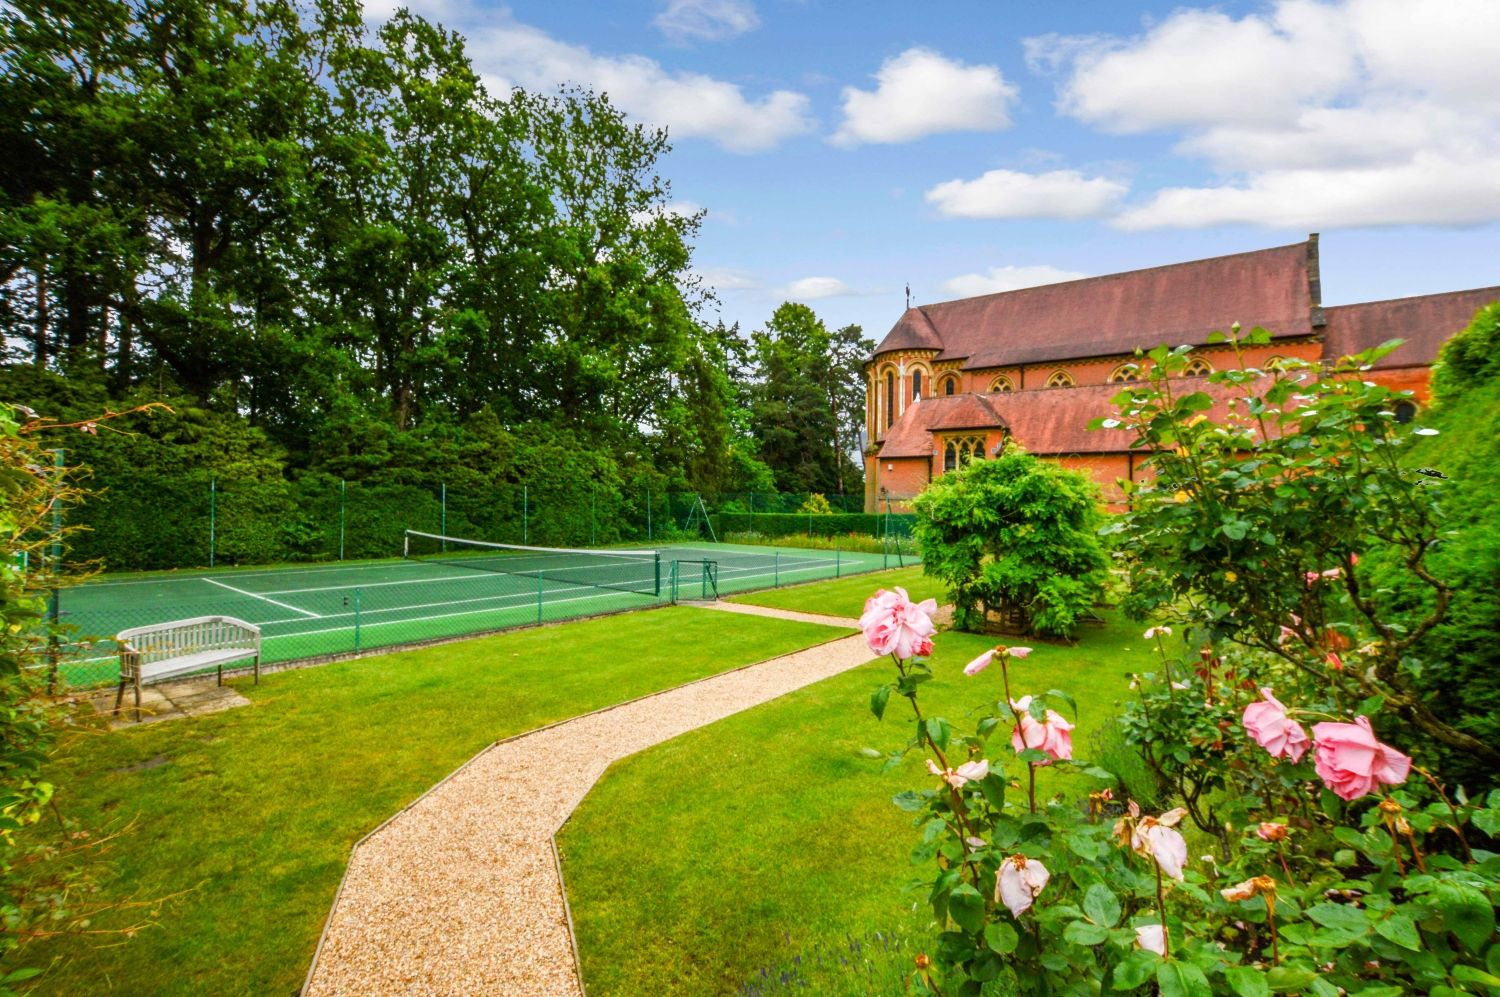 Property photo 1 of 20. Communal Gardens And Tennis Court